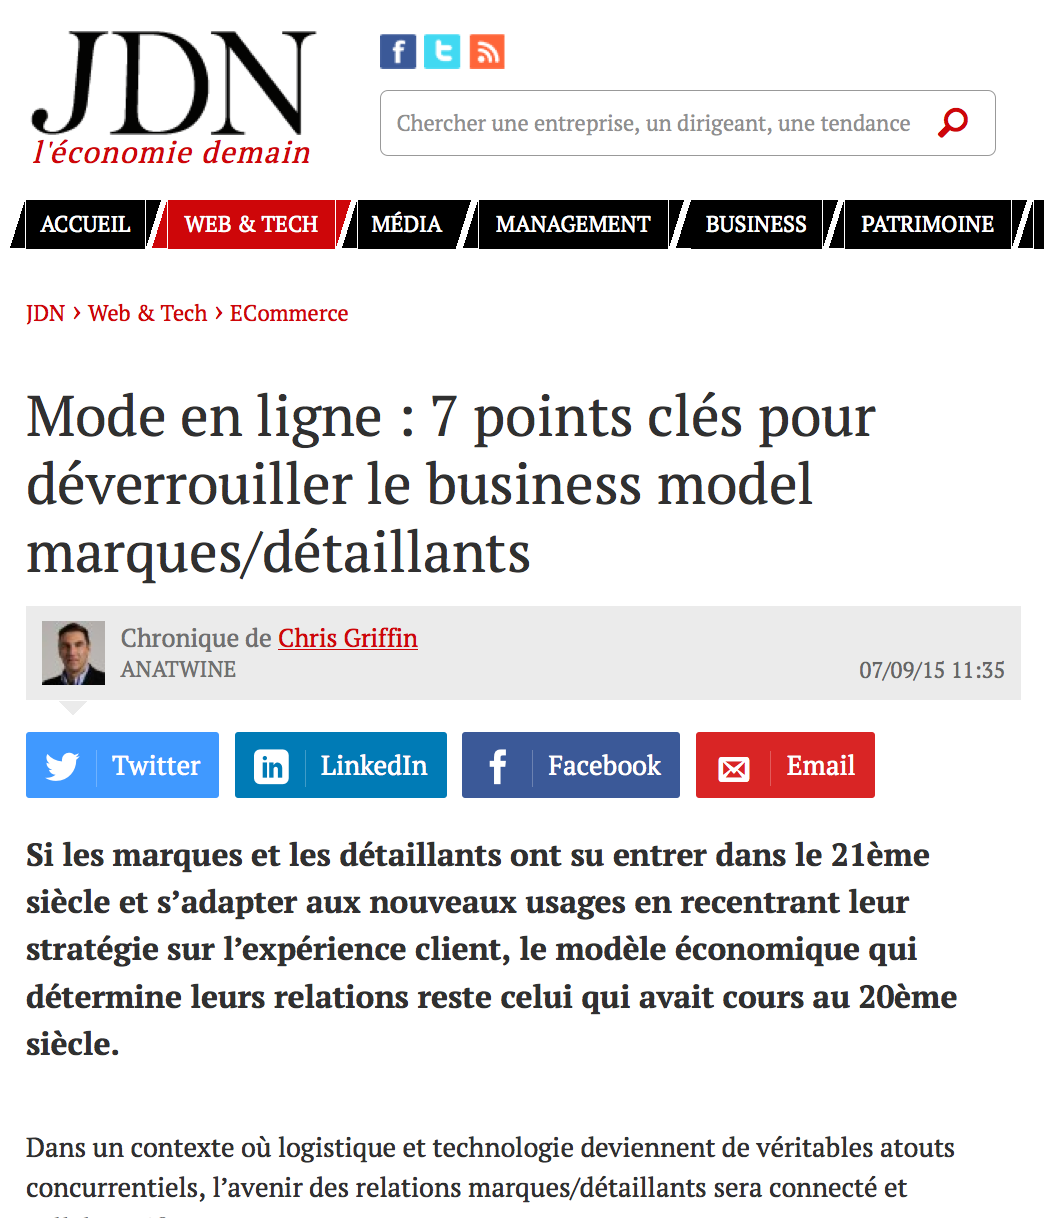 Tribune d'expert JDNET sept 2015